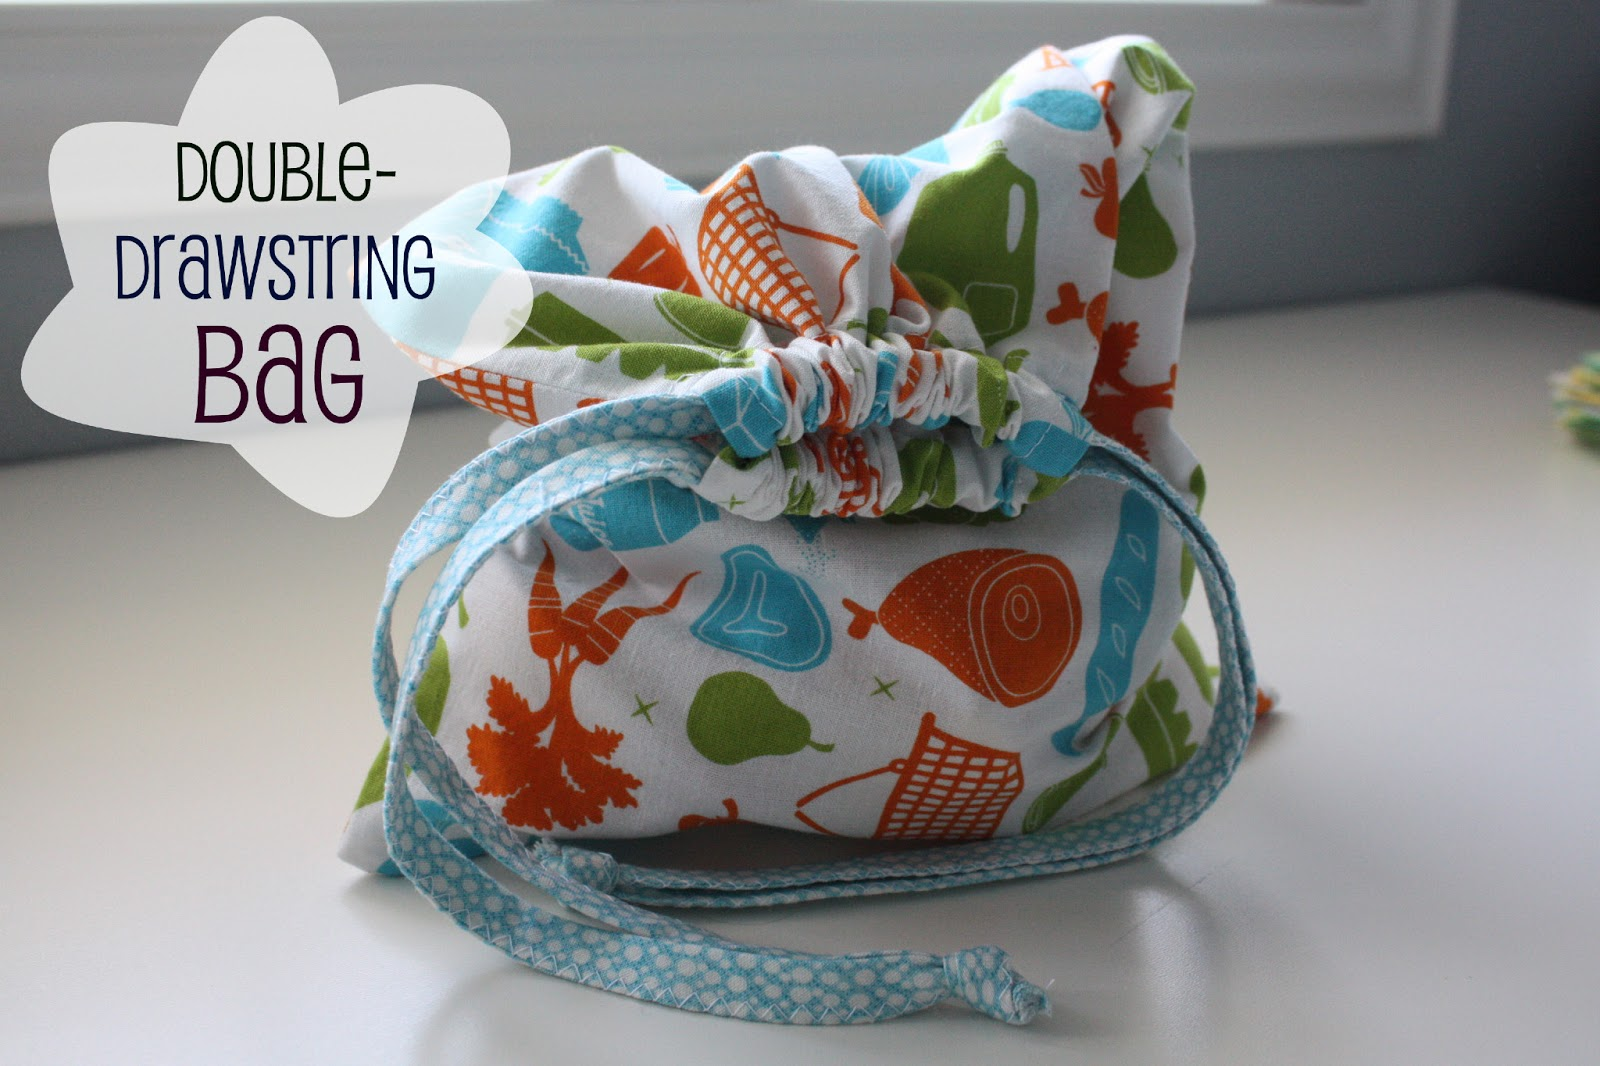 Nicole at Home: Tutorial: Double-drawstring bag